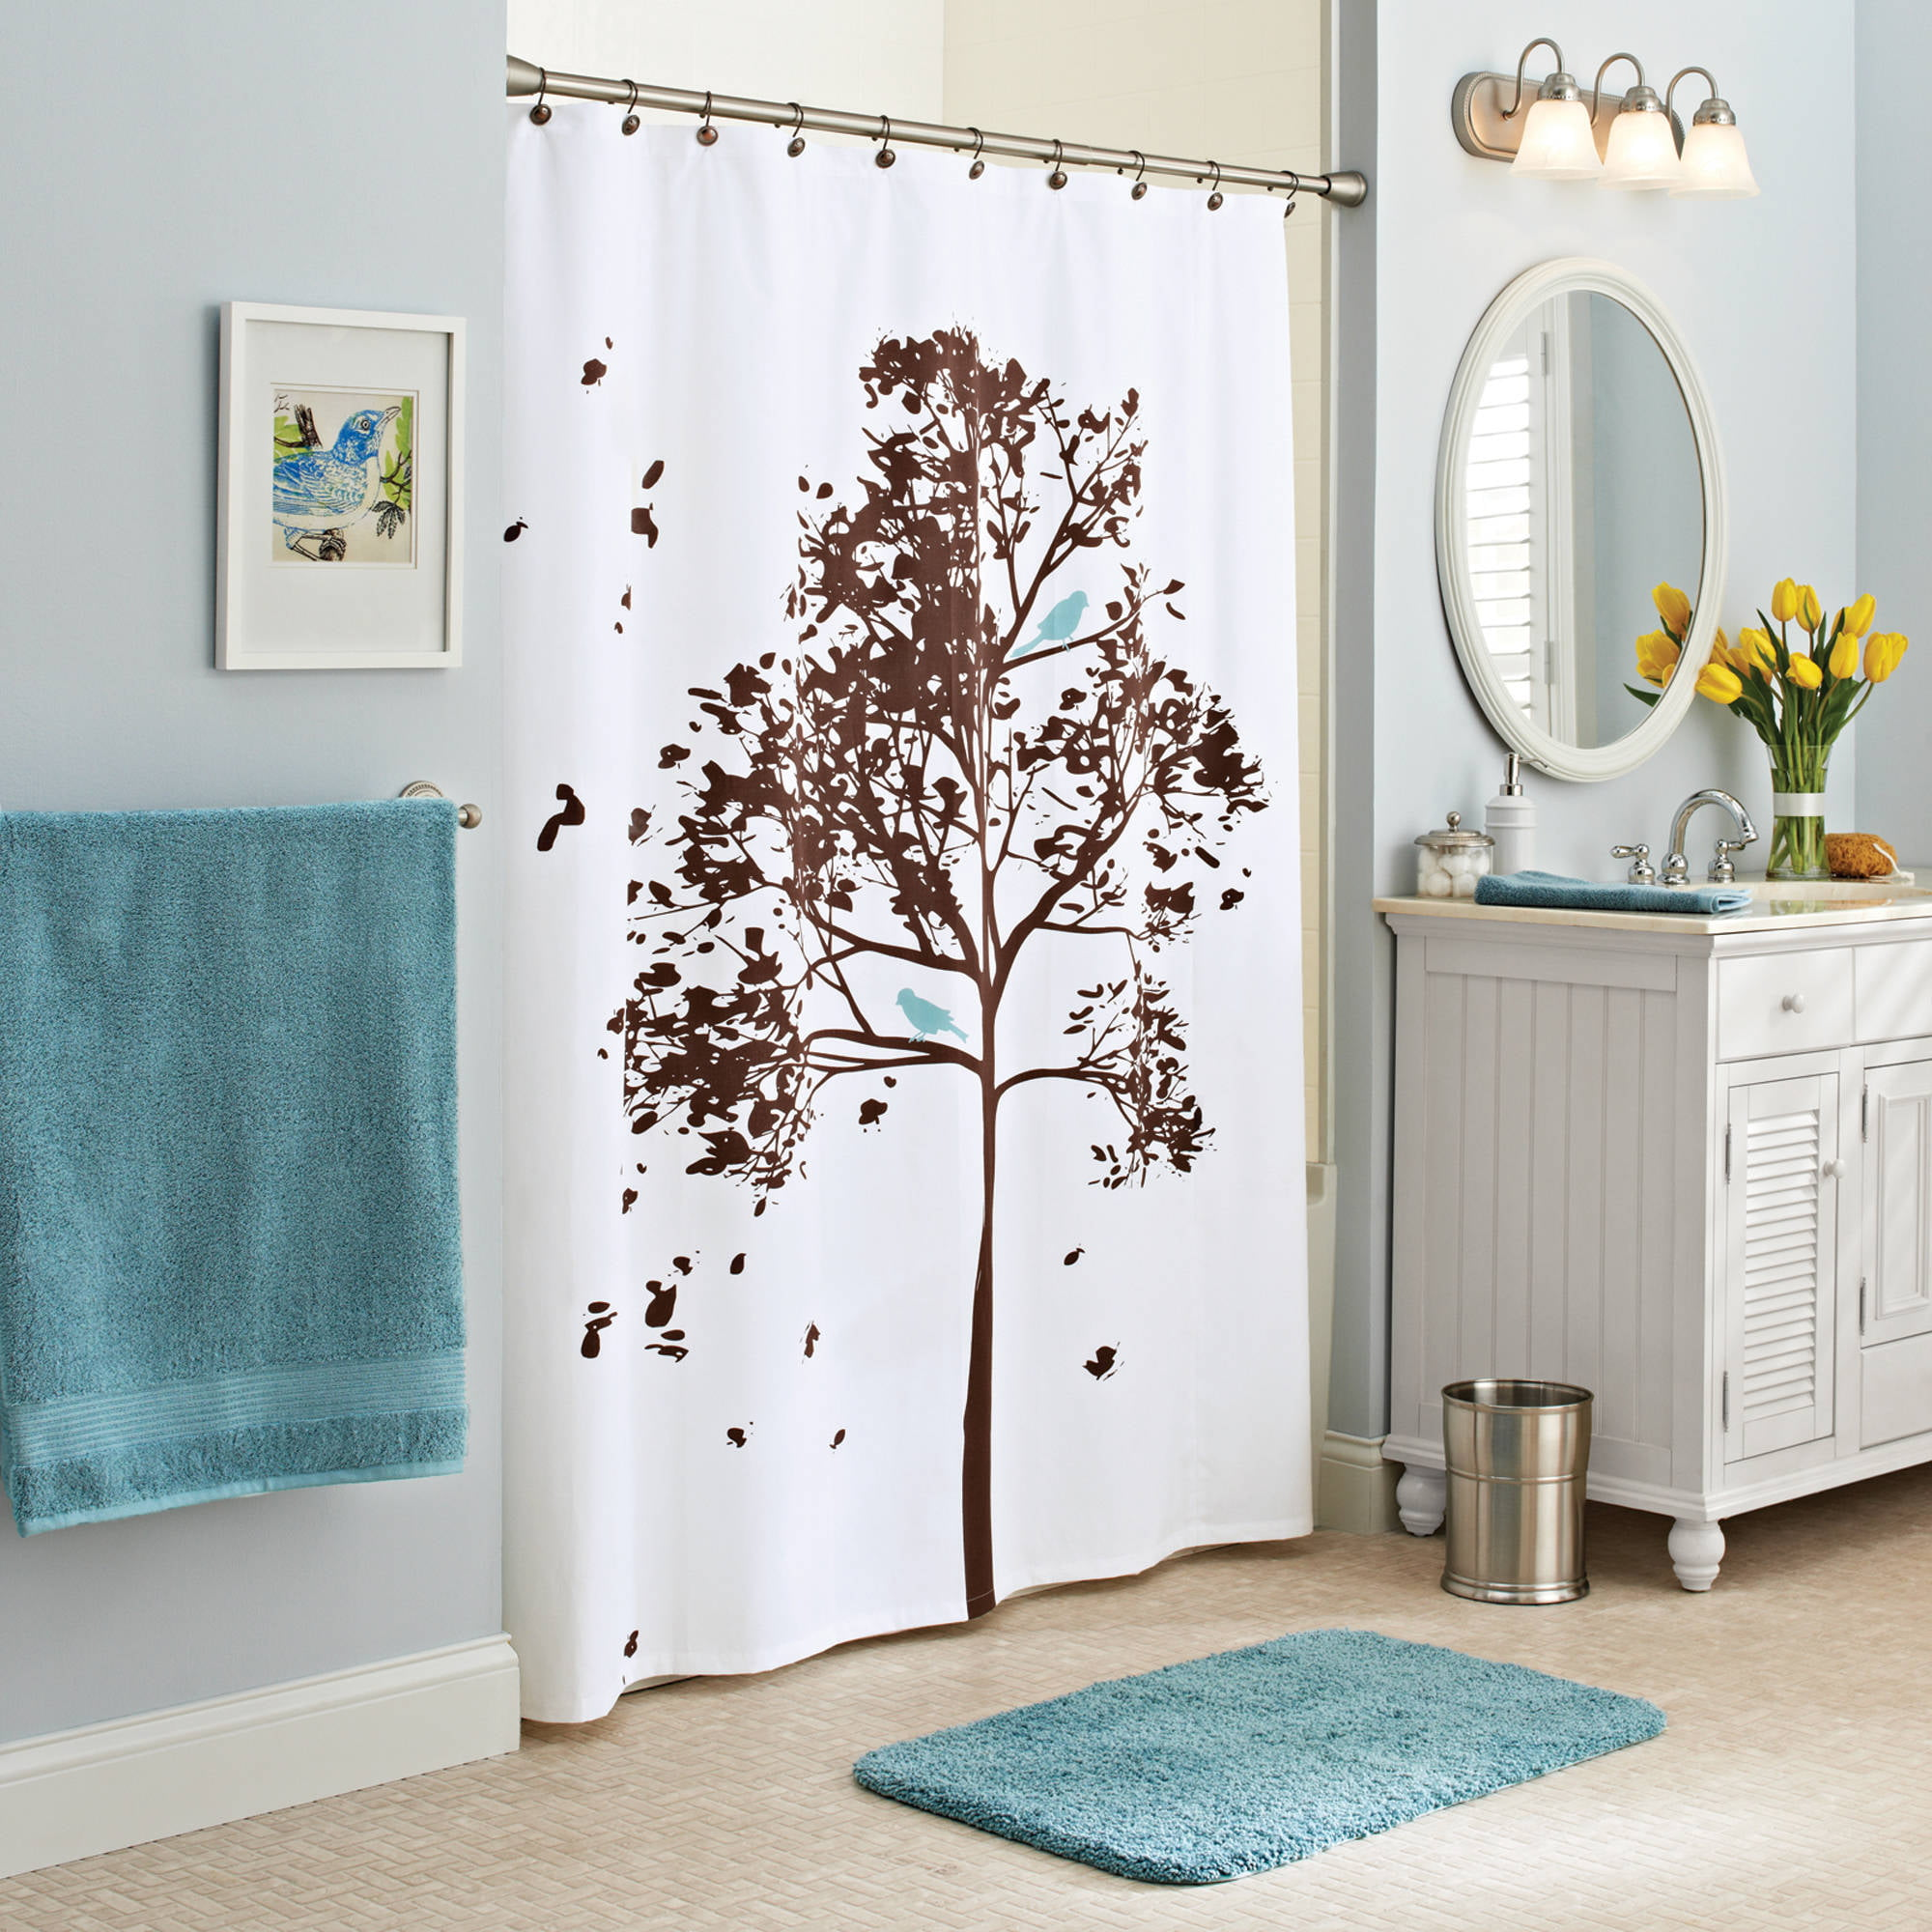 Better Homes and Gardens Farley Tree Fabric Shower Curtain by Maytex Mills